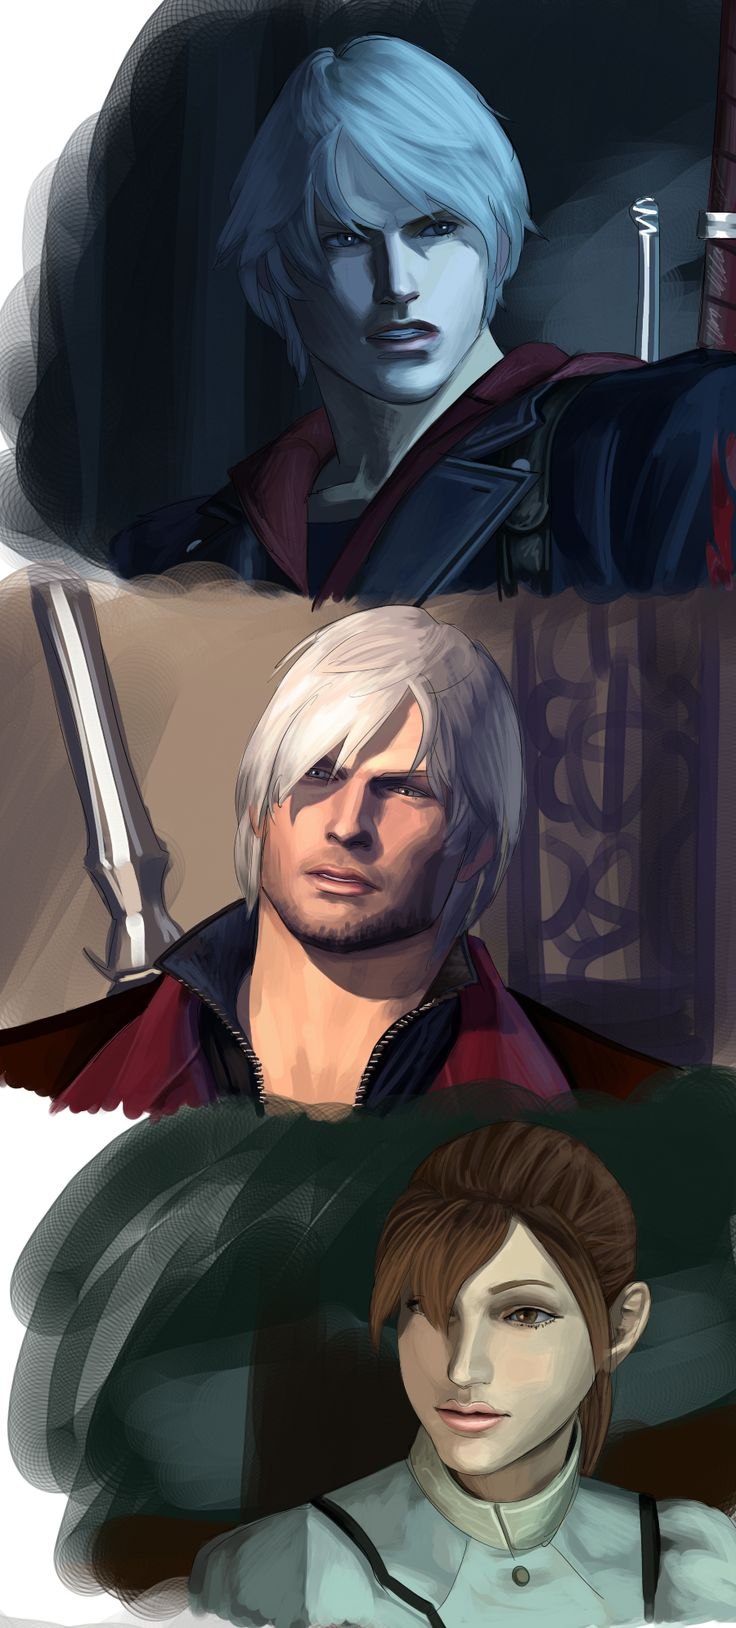 more dmc renders by itchcrotch.deviantart.com on @deviantART Devil May Cry 4 Characters:  Nero, Dante, and Kyrie